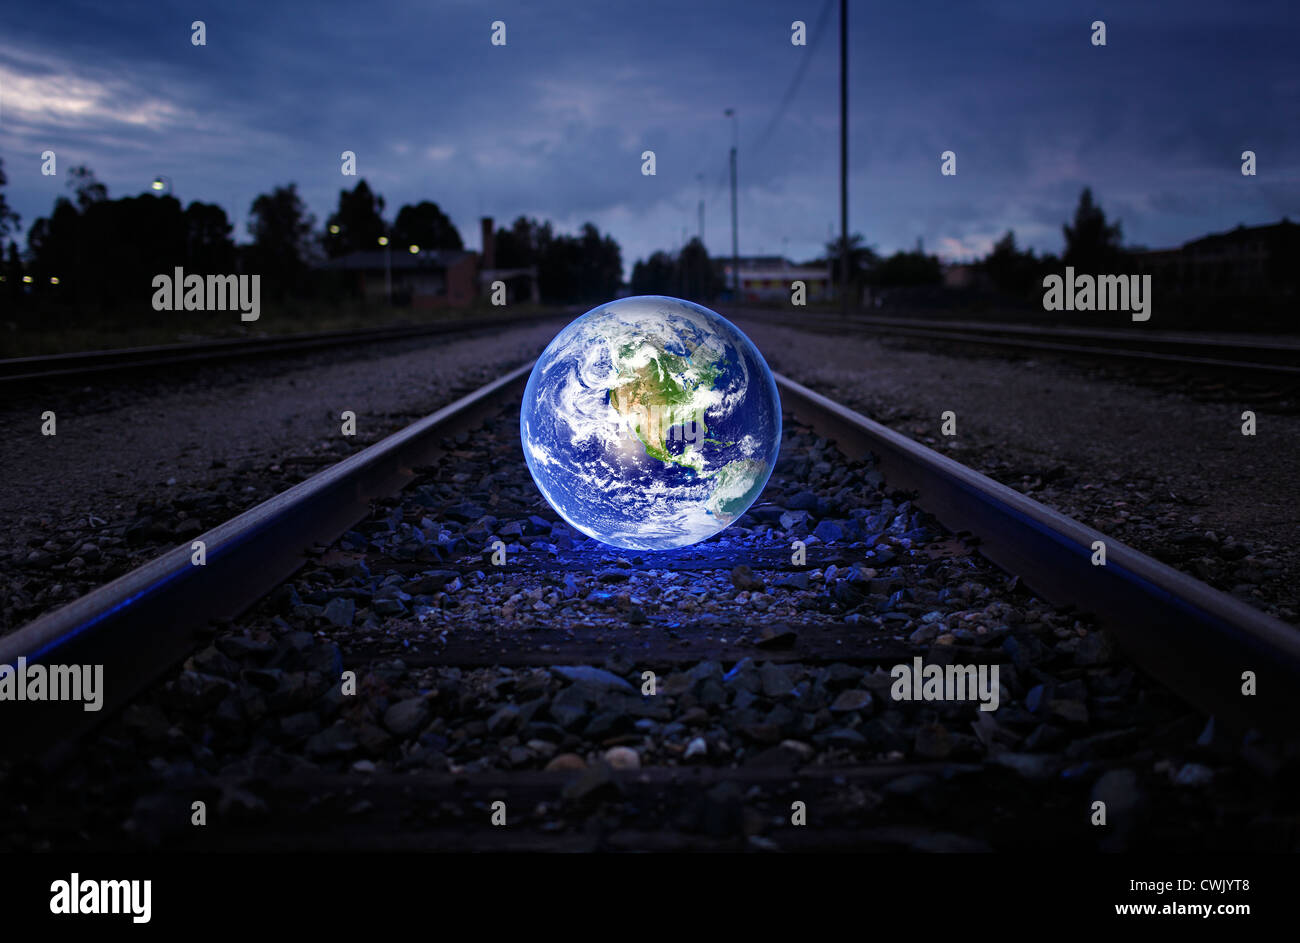 Glowing earth on an old railroad track. Earth image provided by NASA. - Stock Image